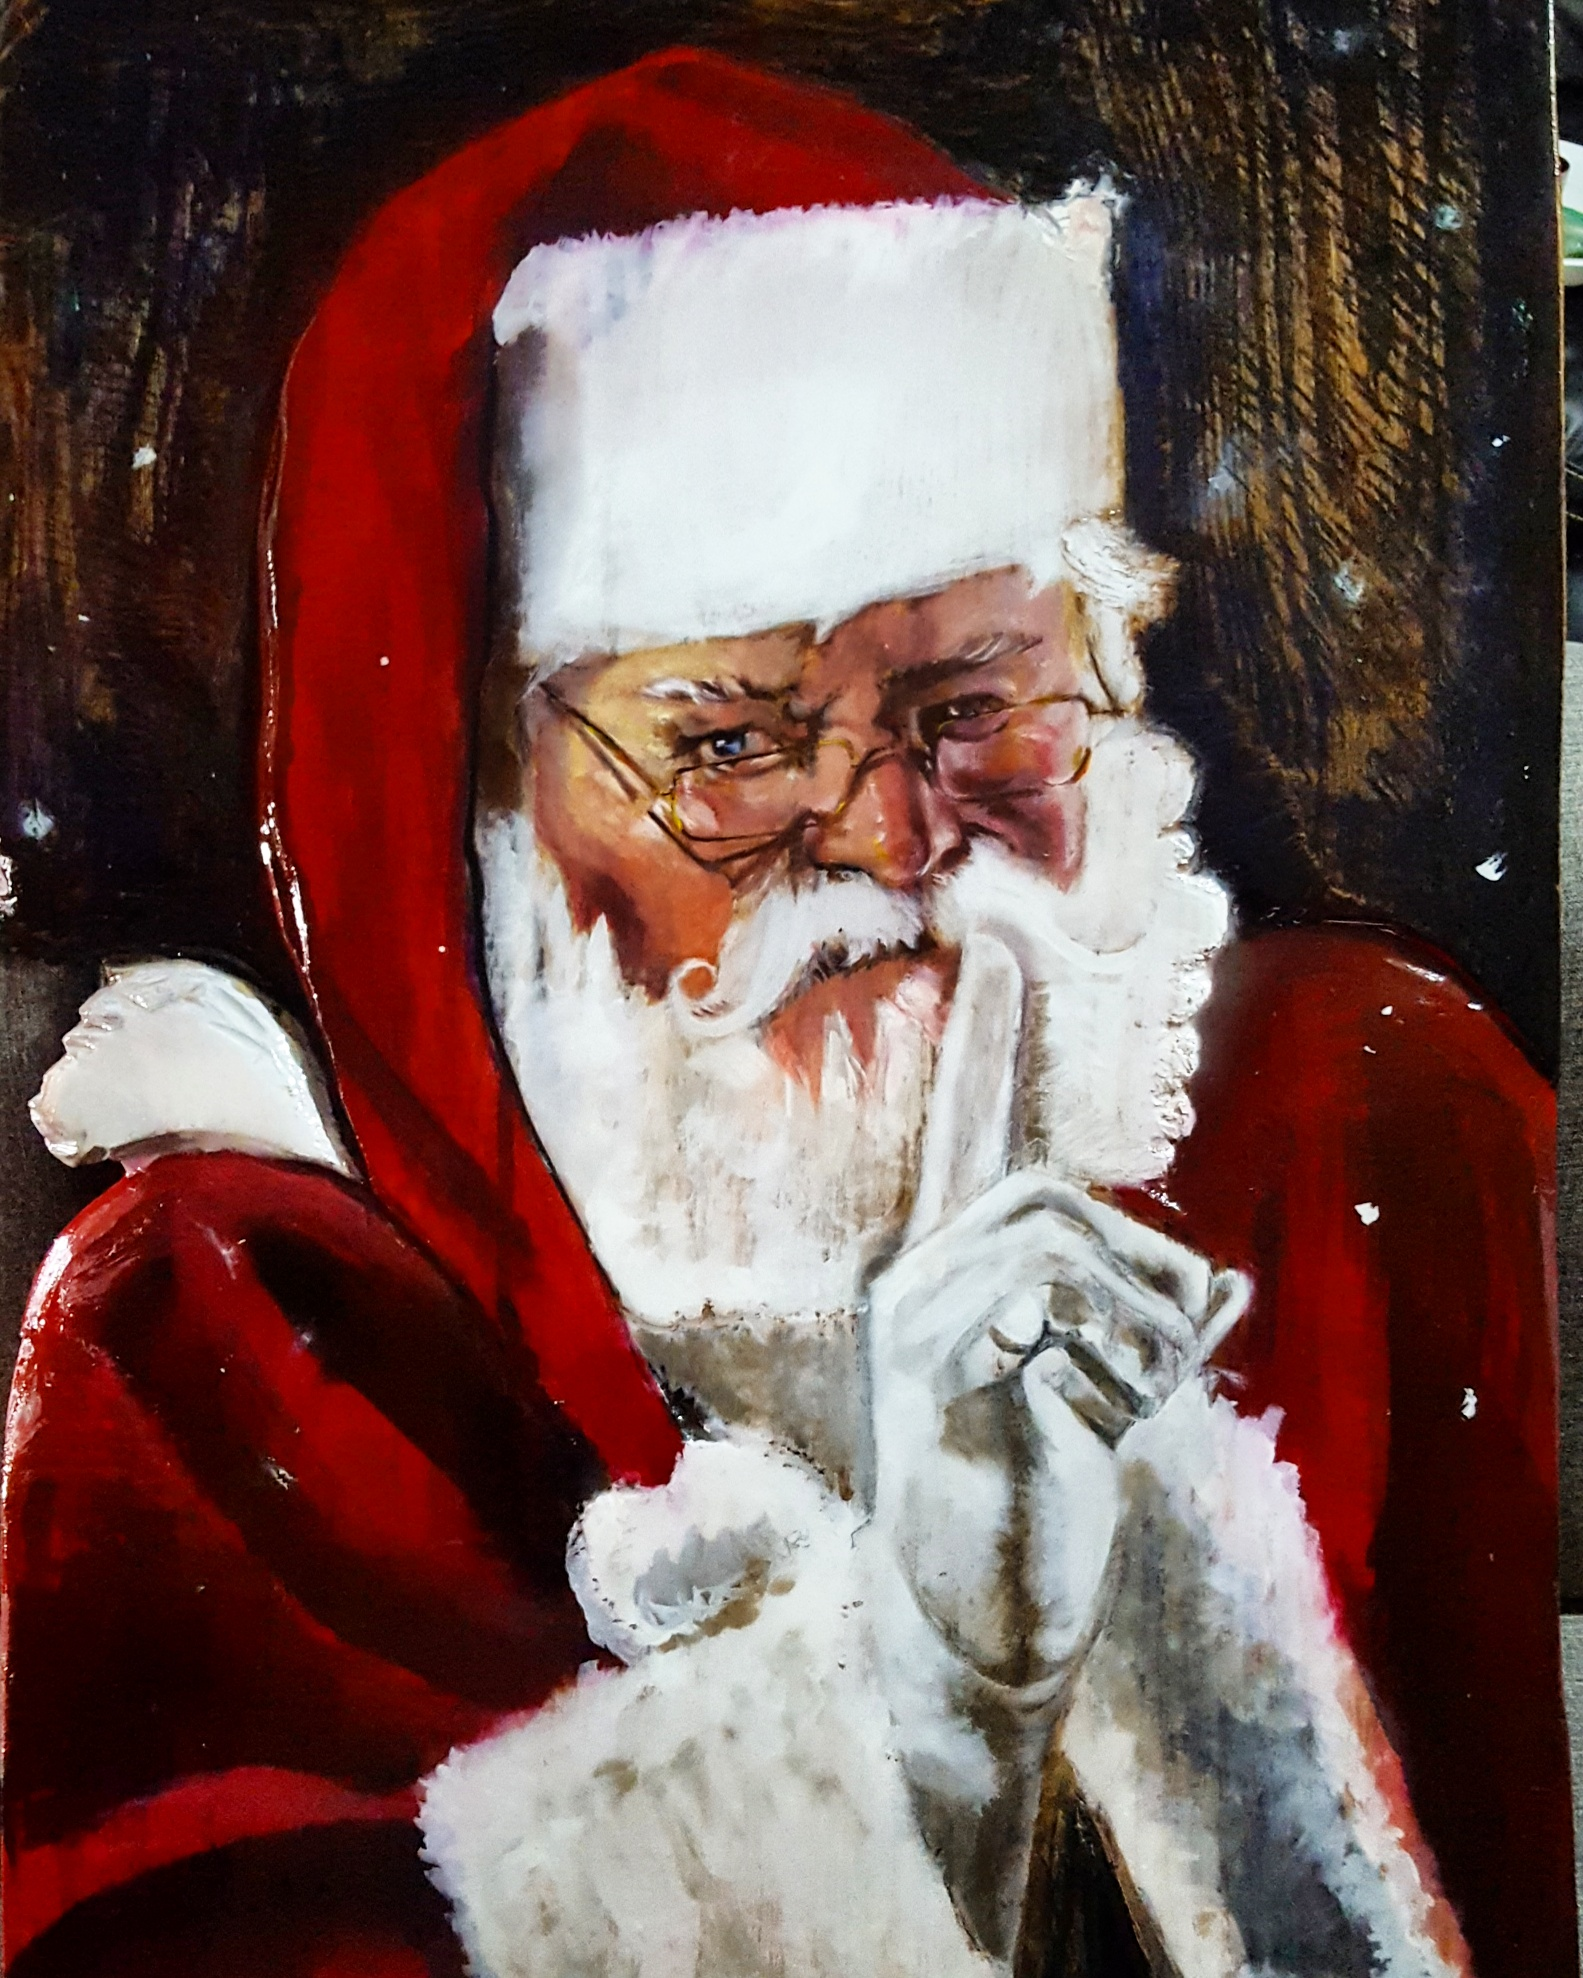 Commissioned mix media on wood santa claus 2 m b w commissioned mix media on wood santa claus 2 jeuxipadfo Choice Image